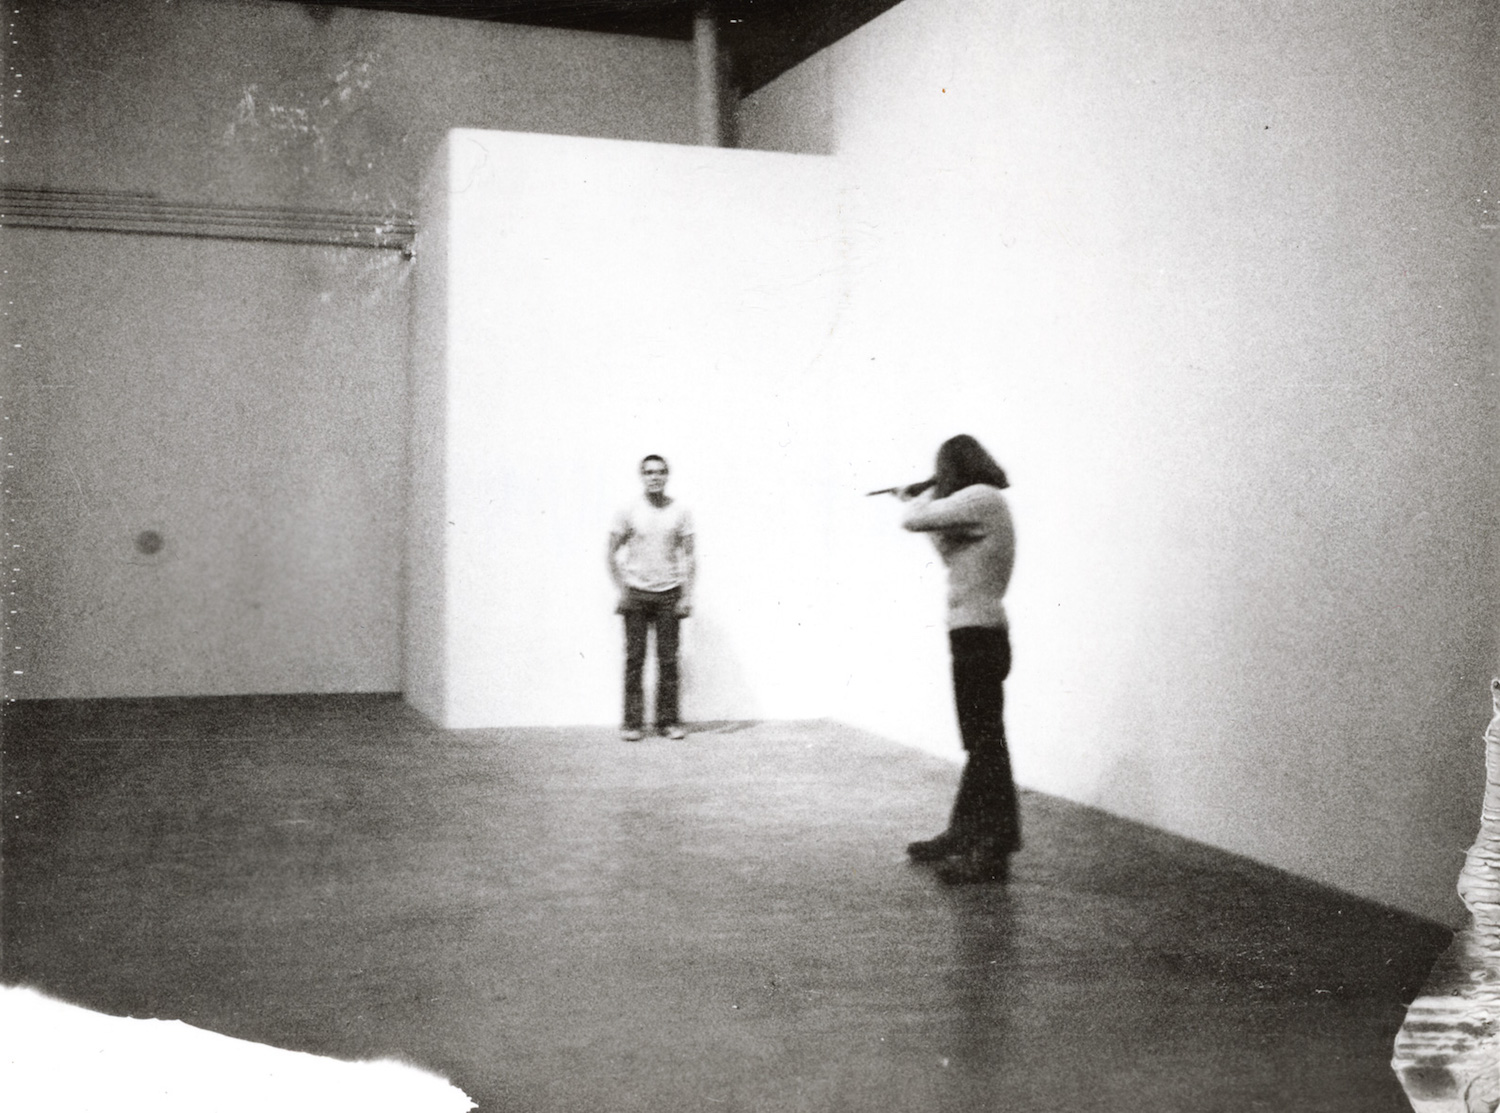 Chris Burden - Shoot. Via veniceperformanceart.com